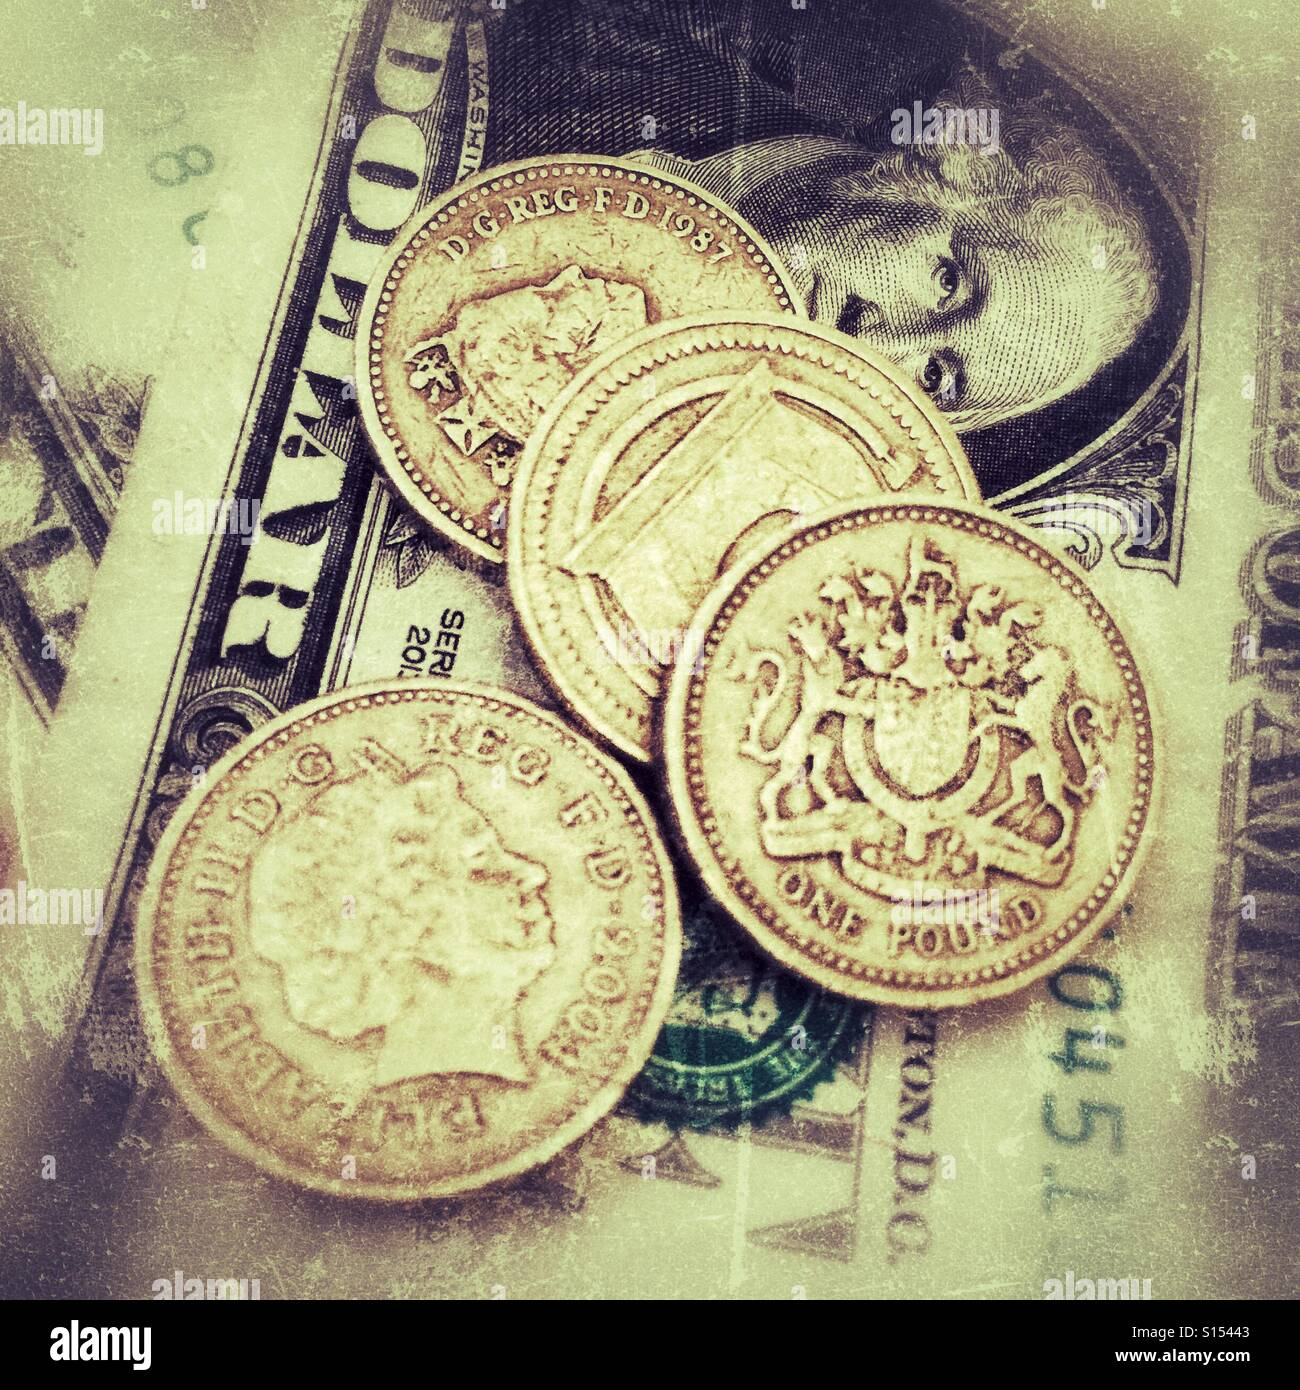 UK Pounds and American Dollars - Stock Image